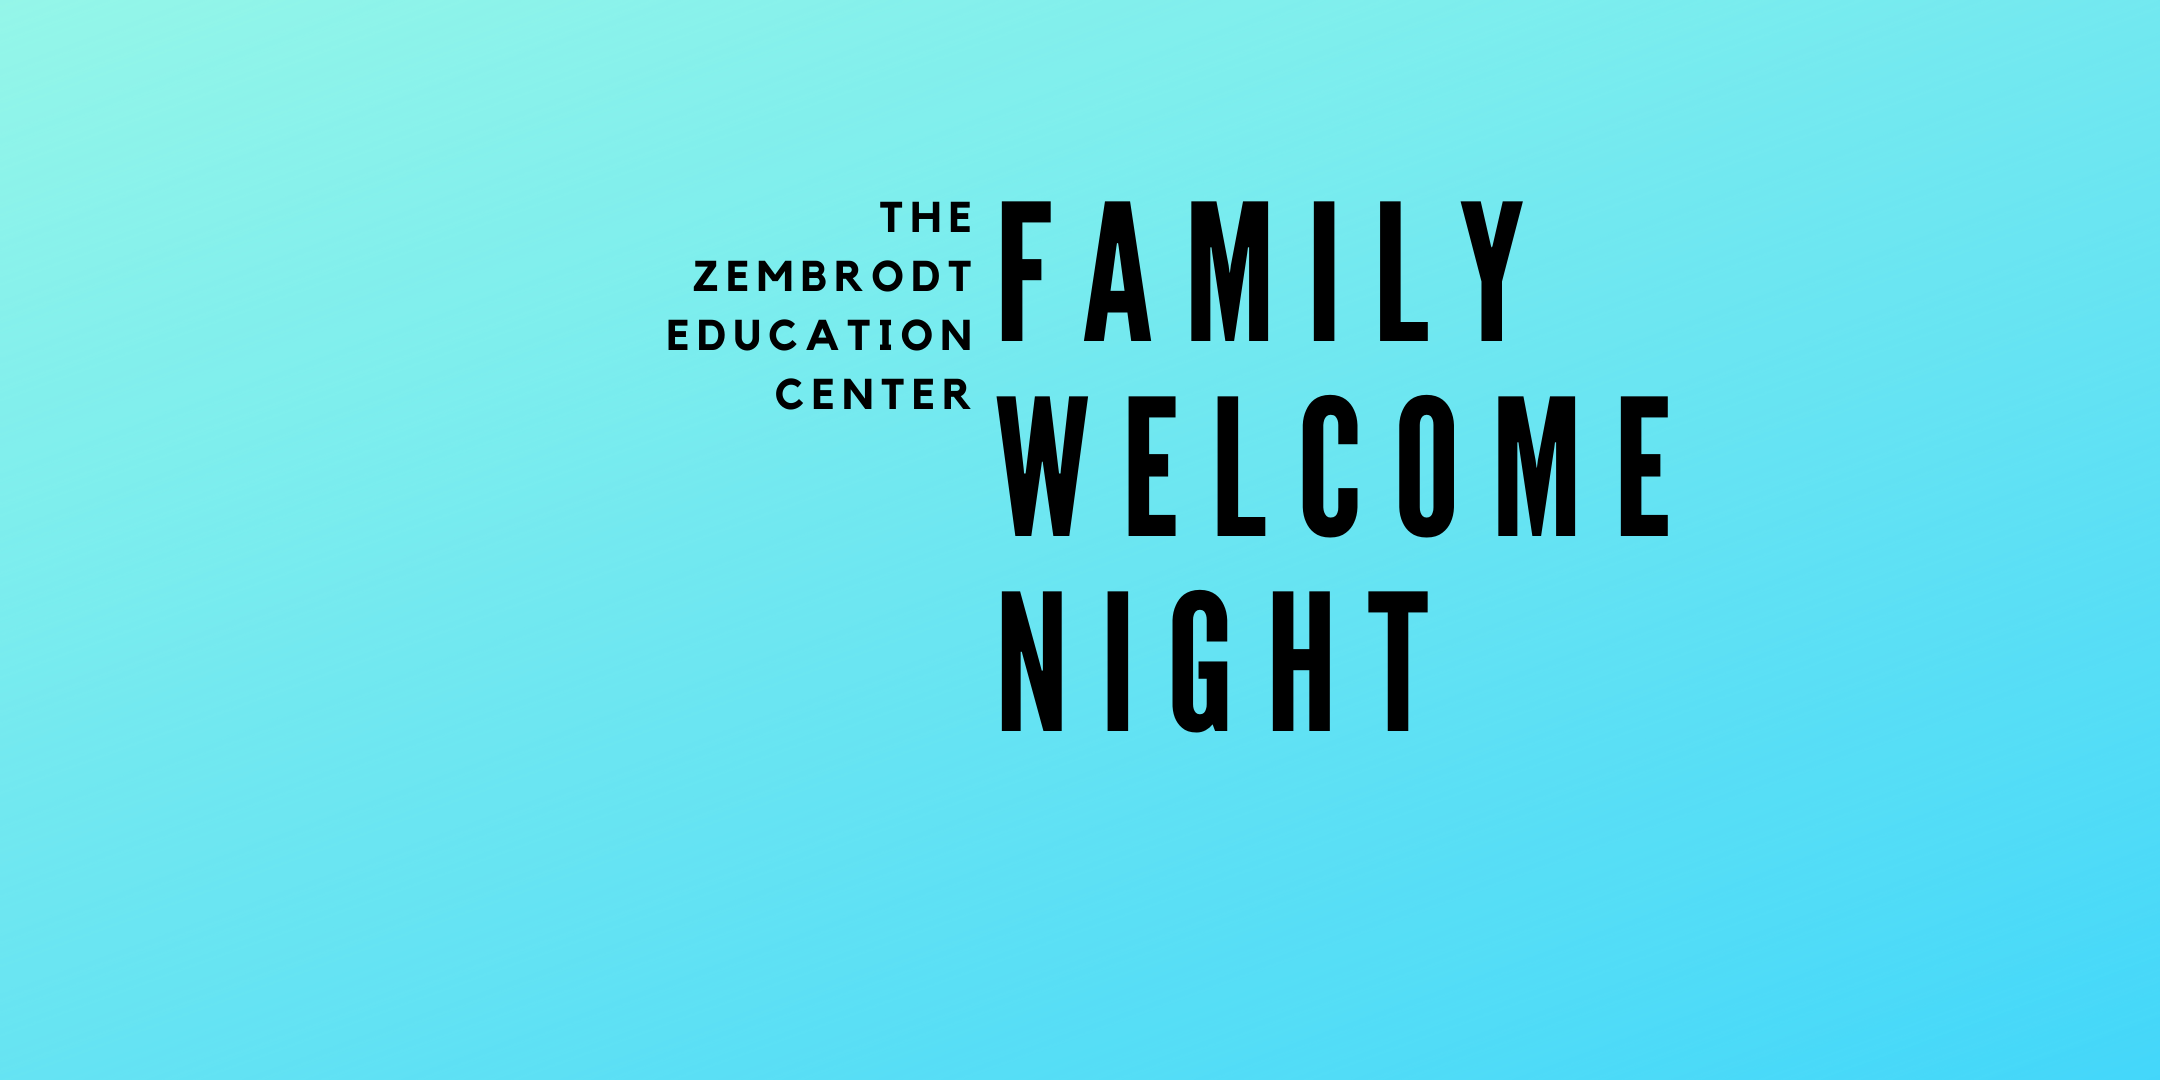 FAMILY WELCOME NIGHT AT THE ZEC